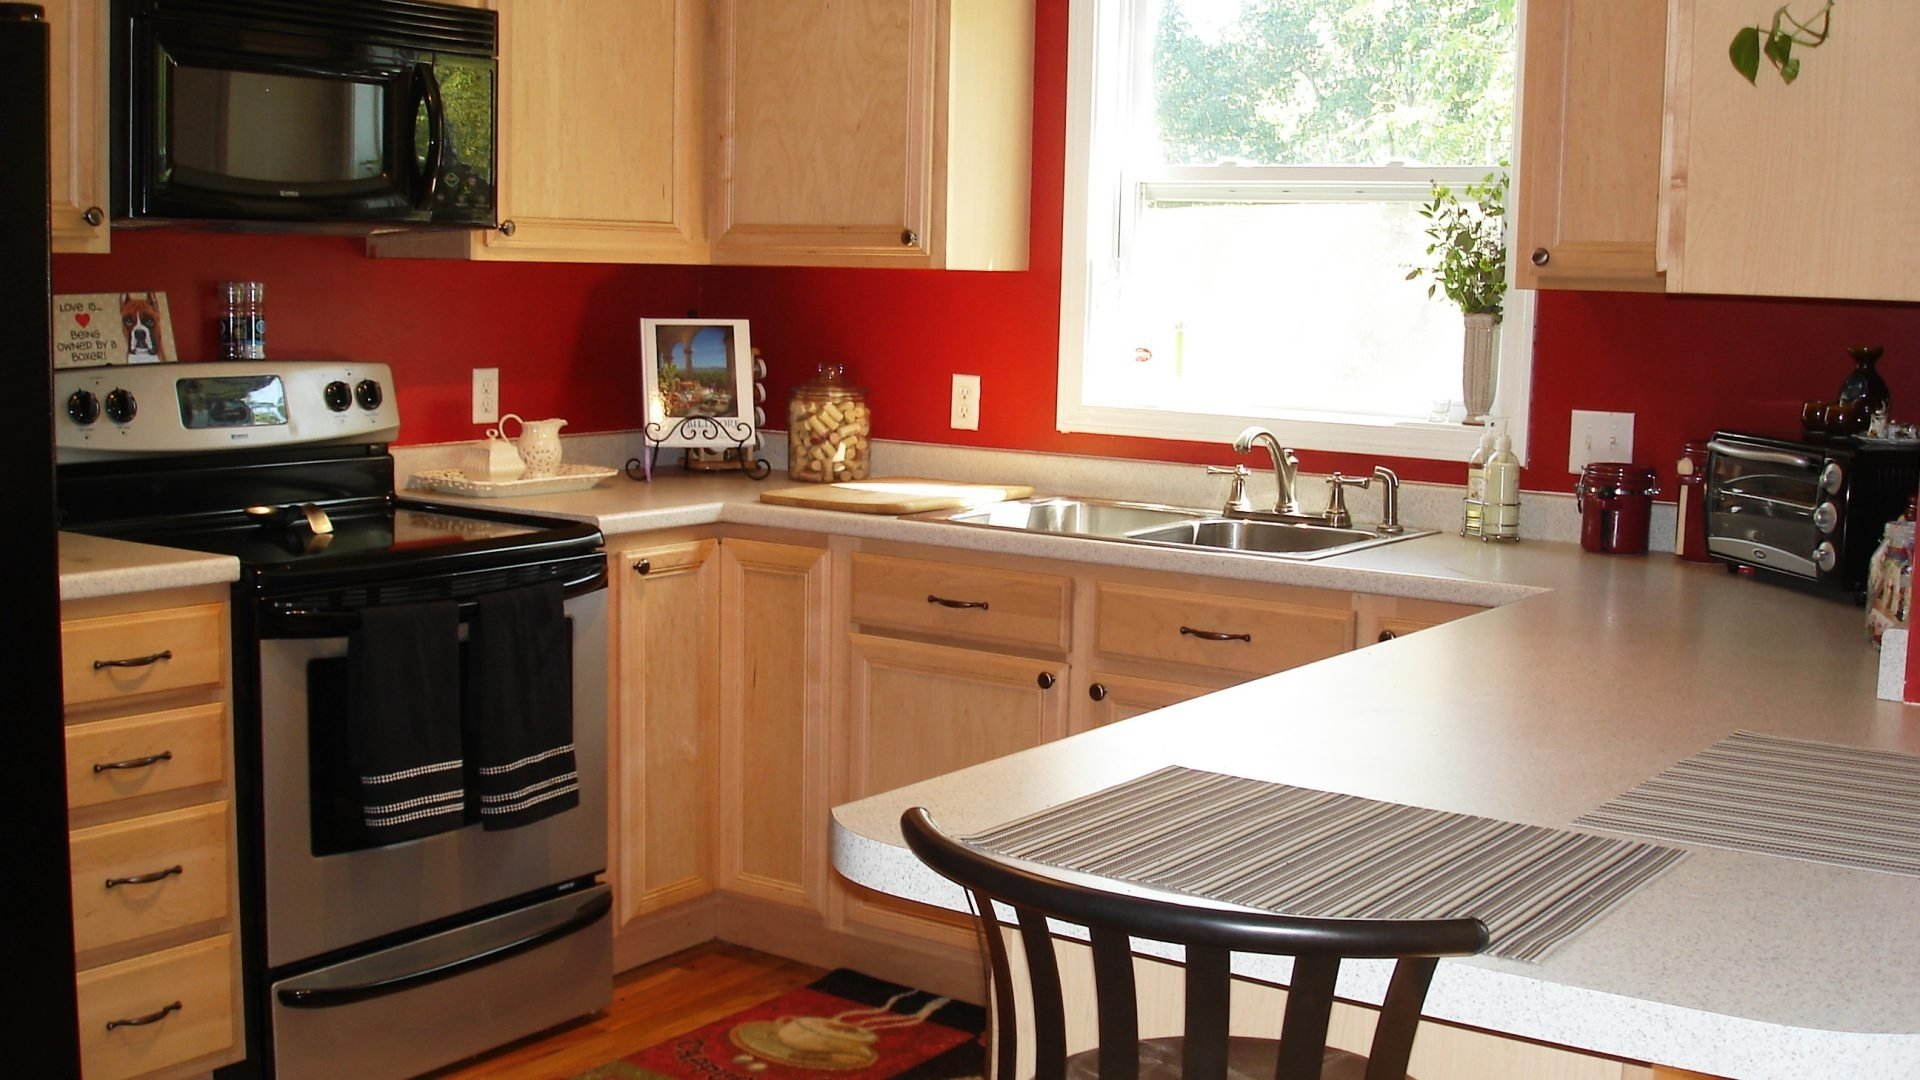 10 Amazing Kitchen Color Ideas For Small Kitchens paint colors for small kitchens with white cabinets cabinet 2021